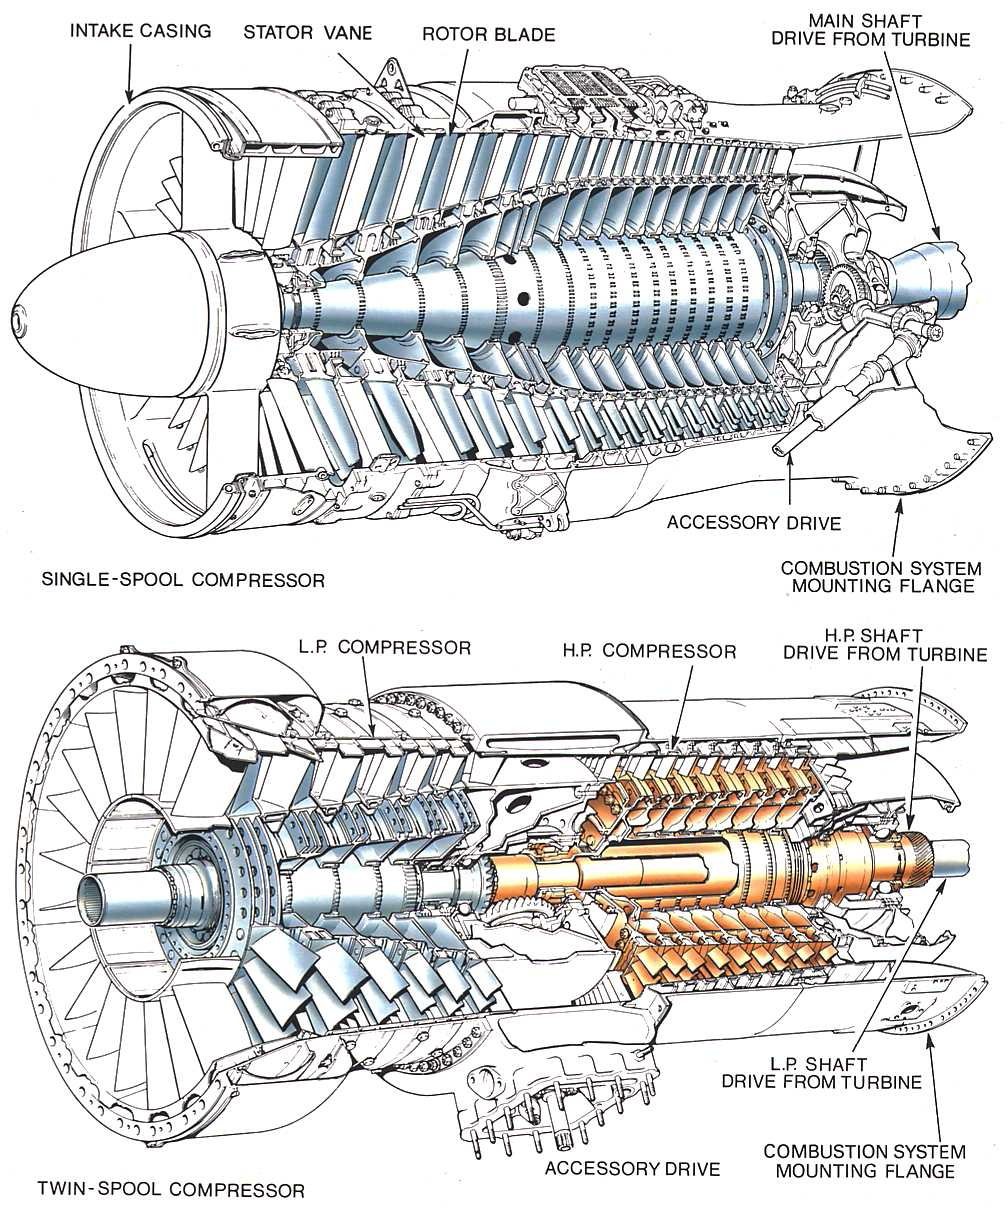 hight resolution of model aircraft the axial flow compressor intake turboshaft helicopter engine diagram turbine engine stator vanes